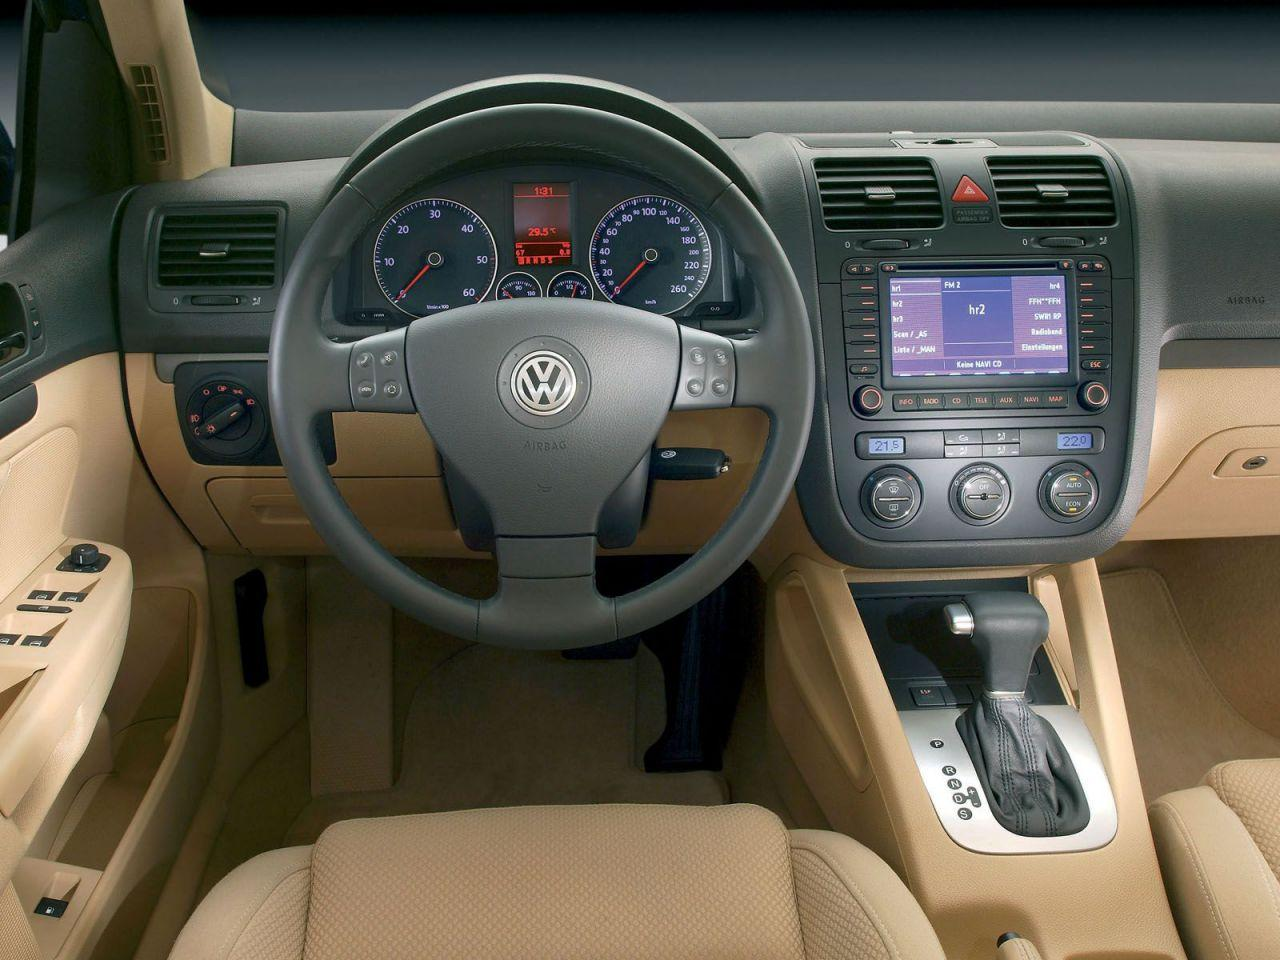 Volkswagen golf v occasion aankoopadvies for Interieur golf v gti